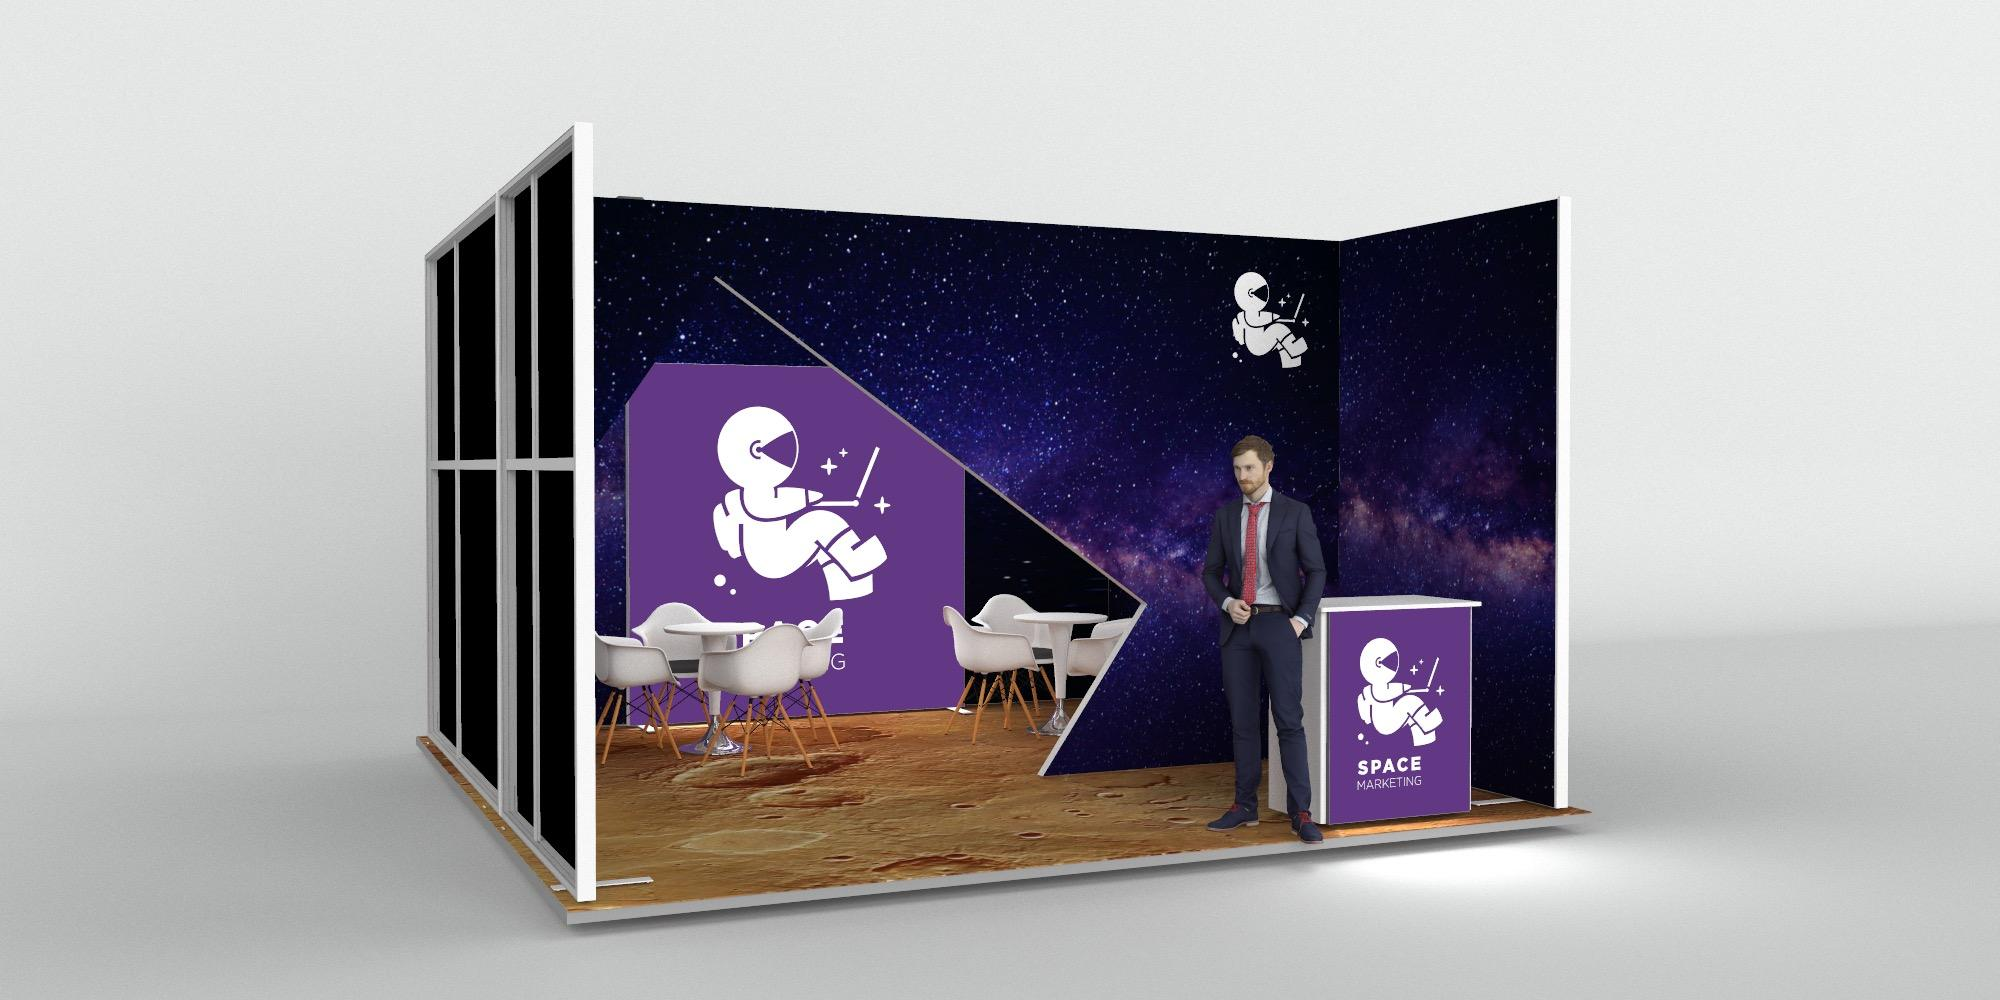 5x5m Exhibition Stand with Meeting Area